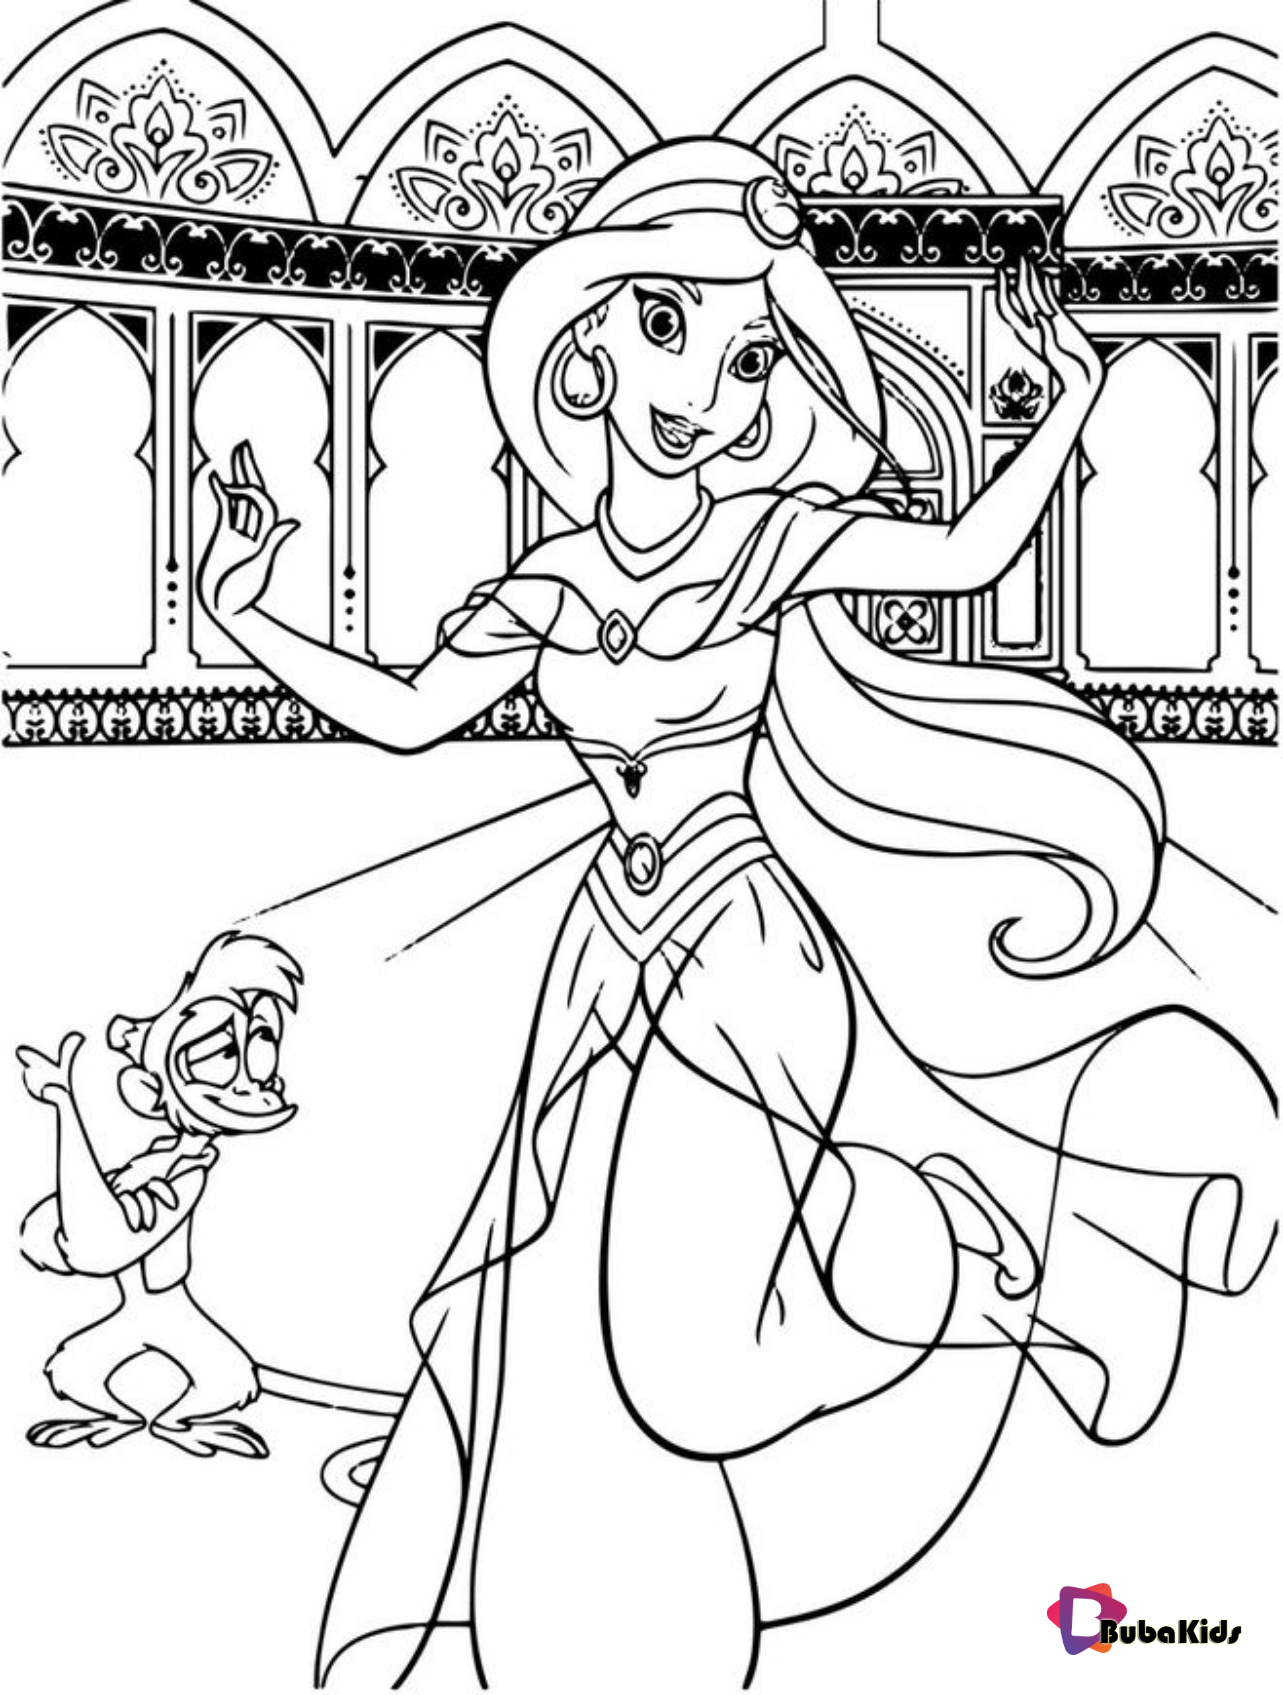 Abu Aladdin Coloring Dancing Jasmine Page Princess Printable Abu Aladdin Disney Princess Coloring Pages Disney Coloring Pages Princess Coloring Pages